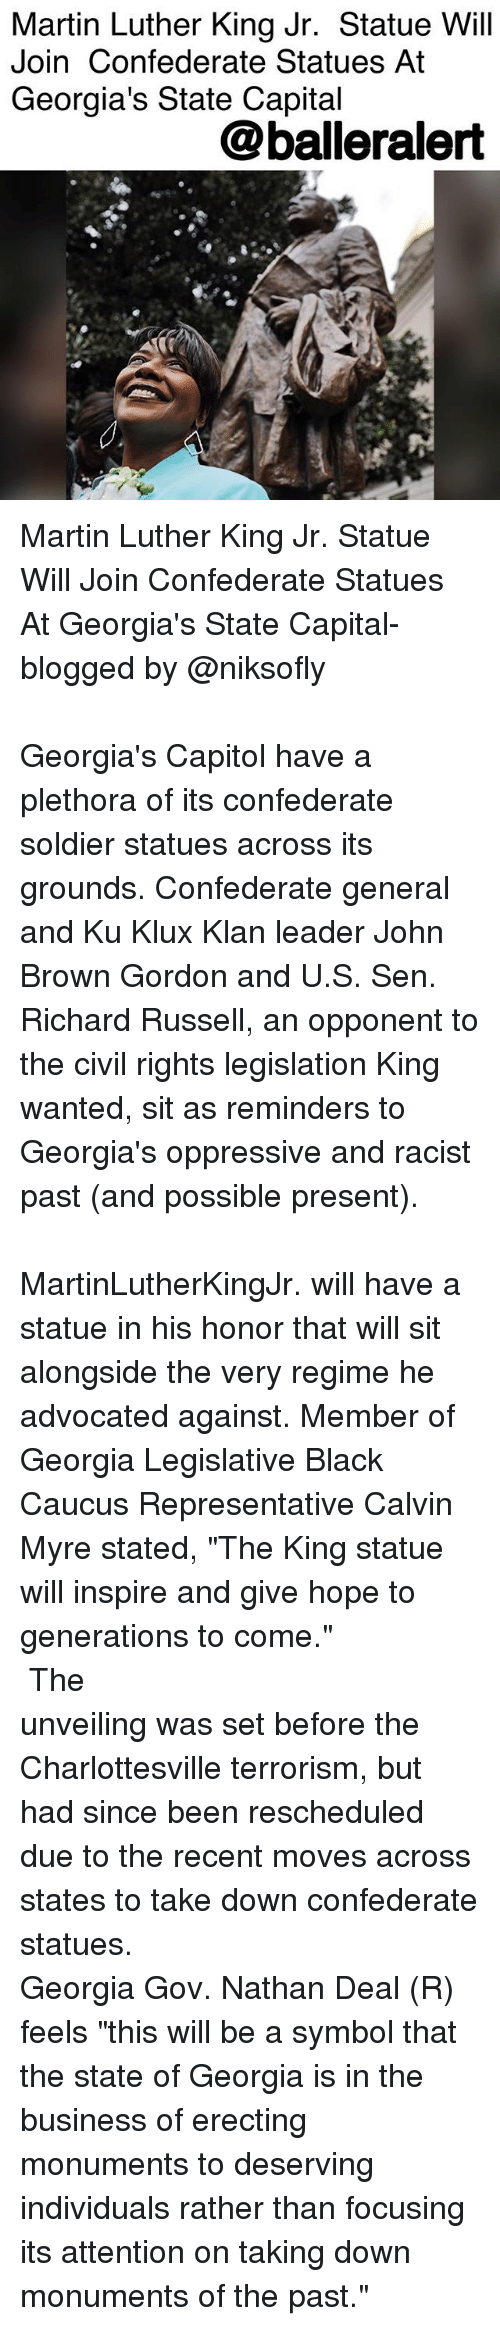 "richards: Martin Luther King Jr. Statue Will  Join Confederate Statues At  Georgia's State Capital  @balleralert Martin Luther King Jr. Statue Will Join Confederate Statues At Georgia's State Capital- blogged by @niksofly ⠀⠀⠀⠀⠀⠀⠀⠀⠀⠀⠀⠀⠀⠀⠀⠀⠀⠀⠀⠀⠀⠀⠀⠀⠀⠀⠀⠀⠀⠀⠀⠀⠀⠀⠀⠀ Georgia's Capitol have a plethora of its confederate soldier statues across its grounds. Confederate general and Ku Klux Klan leader John Brown Gordon and U.S. Sen. Richard Russell, an opponent to the civil rights legislation King wanted, sit as reminders to Georgia's oppressive and racist past (and possible present). ⠀⠀⠀⠀⠀⠀⠀⠀⠀⠀⠀⠀⠀⠀⠀⠀⠀⠀⠀⠀⠀⠀⠀⠀⠀⠀⠀⠀⠀⠀⠀⠀⠀⠀⠀⠀ MartinLutherKingJr. will have a statue in his honor that will sit alongside the very regime he advocated against. Member of Georgia Legislative Black Caucus Representative Calvin Myre stated, ""The King statue will inspire and give hope to generations to come."" ⠀⠀⠀⠀⠀⠀⠀⠀⠀⠀⠀⠀⠀⠀⠀⠀⠀⠀⠀⠀⠀⠀⠀⠀⠀⠀⠀⠀⠀⠀⠀⠀⠀⠀⠀⠀ The unveiling was set before the Charlottesville terrorism, but had since been rescheduled due to the recent moves across states to take down confederate statues. ⠀⠀⠀⠀⠀⠀⠀⠀⠀⠀⠀⠀⠀⠀⠀⠀⠀⠀⠀⠀⠀⠀⠀⠀⠀⠀⠀⠀⠀⠀⠀⠀⠀⠀⠀⠀ Georgia Gov. Nathan Deal (R) feels ""this will be a symbol that the state of Georgia is in the business of erecting monuments to deserving individuals rather than focusing its attention on taking down monuments of the past."""